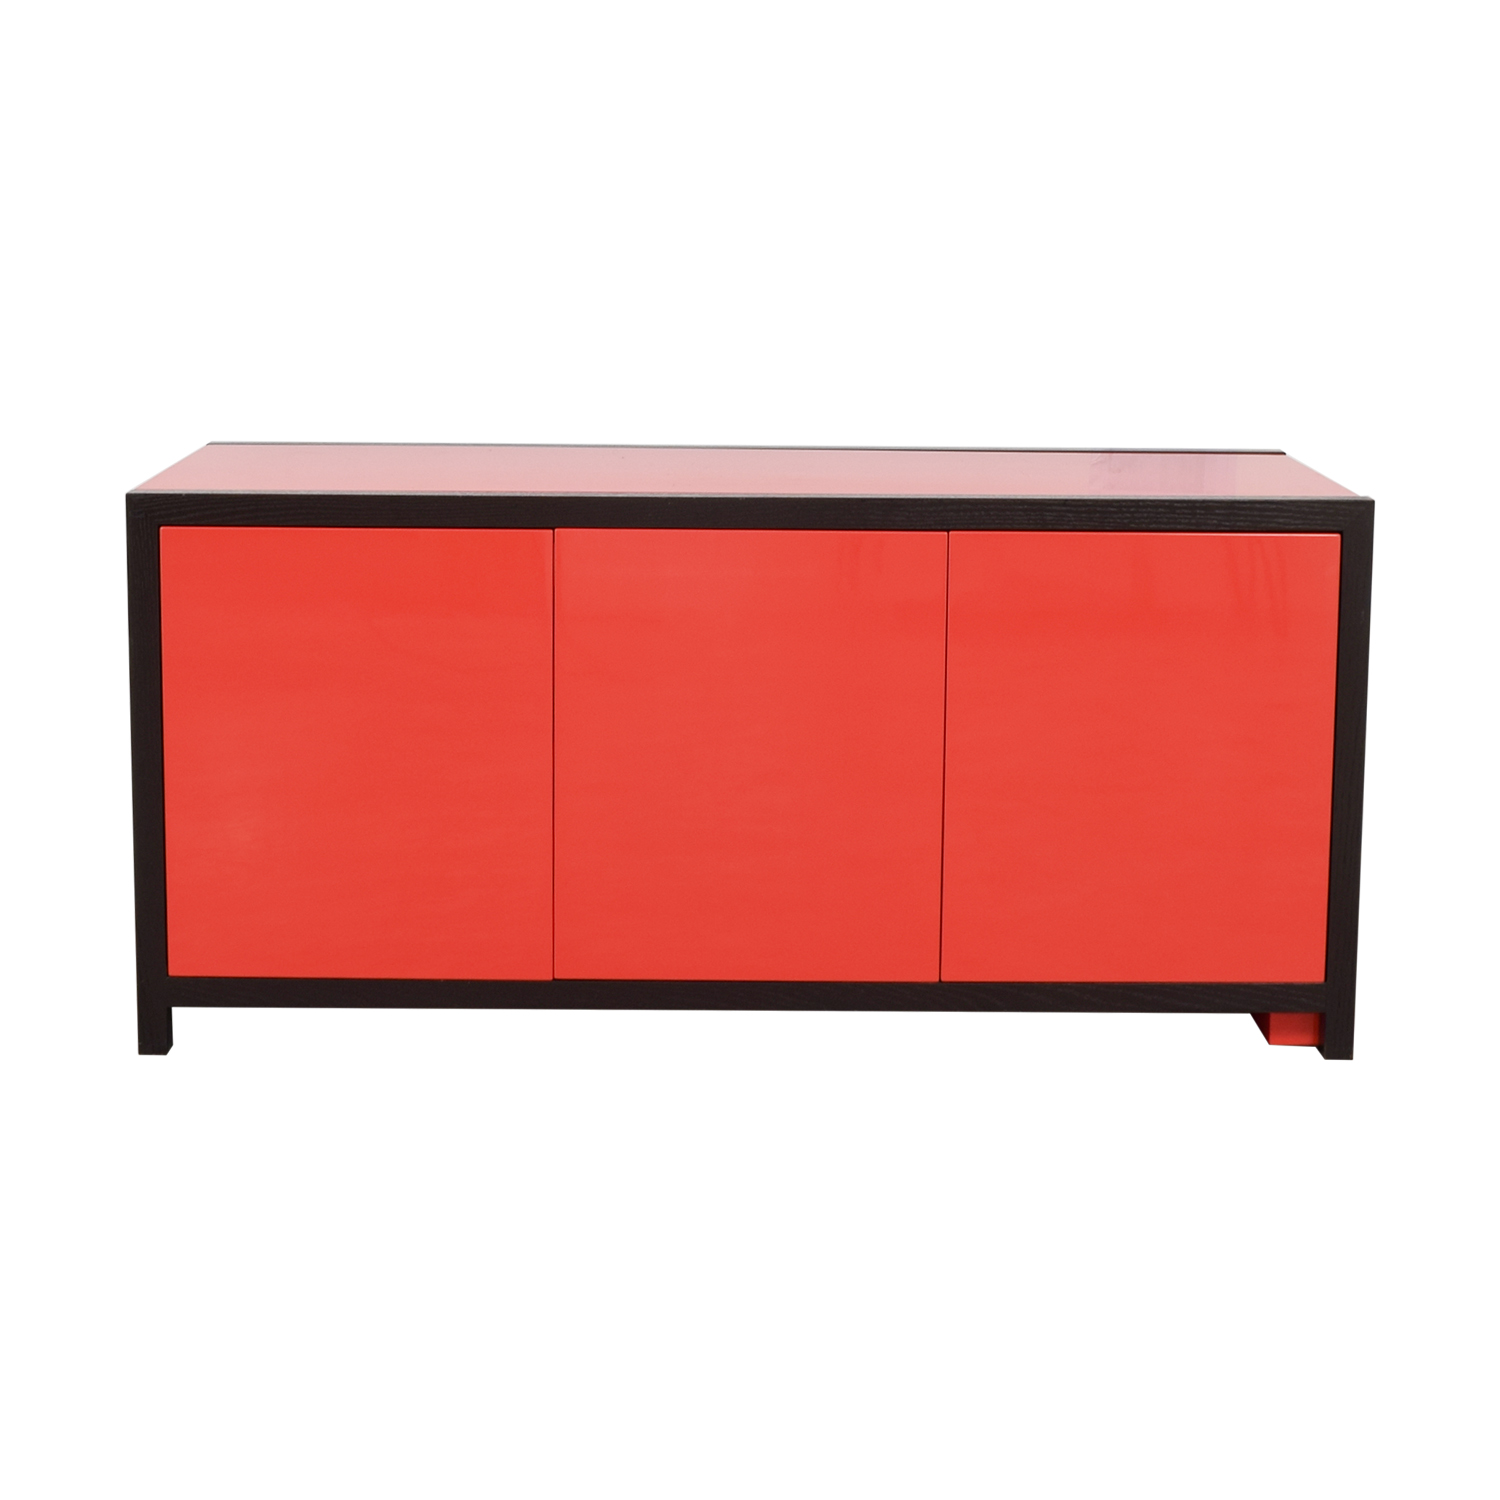 Dune Dune Modern Le Mans Black and Red Cabinet to Desk nyc